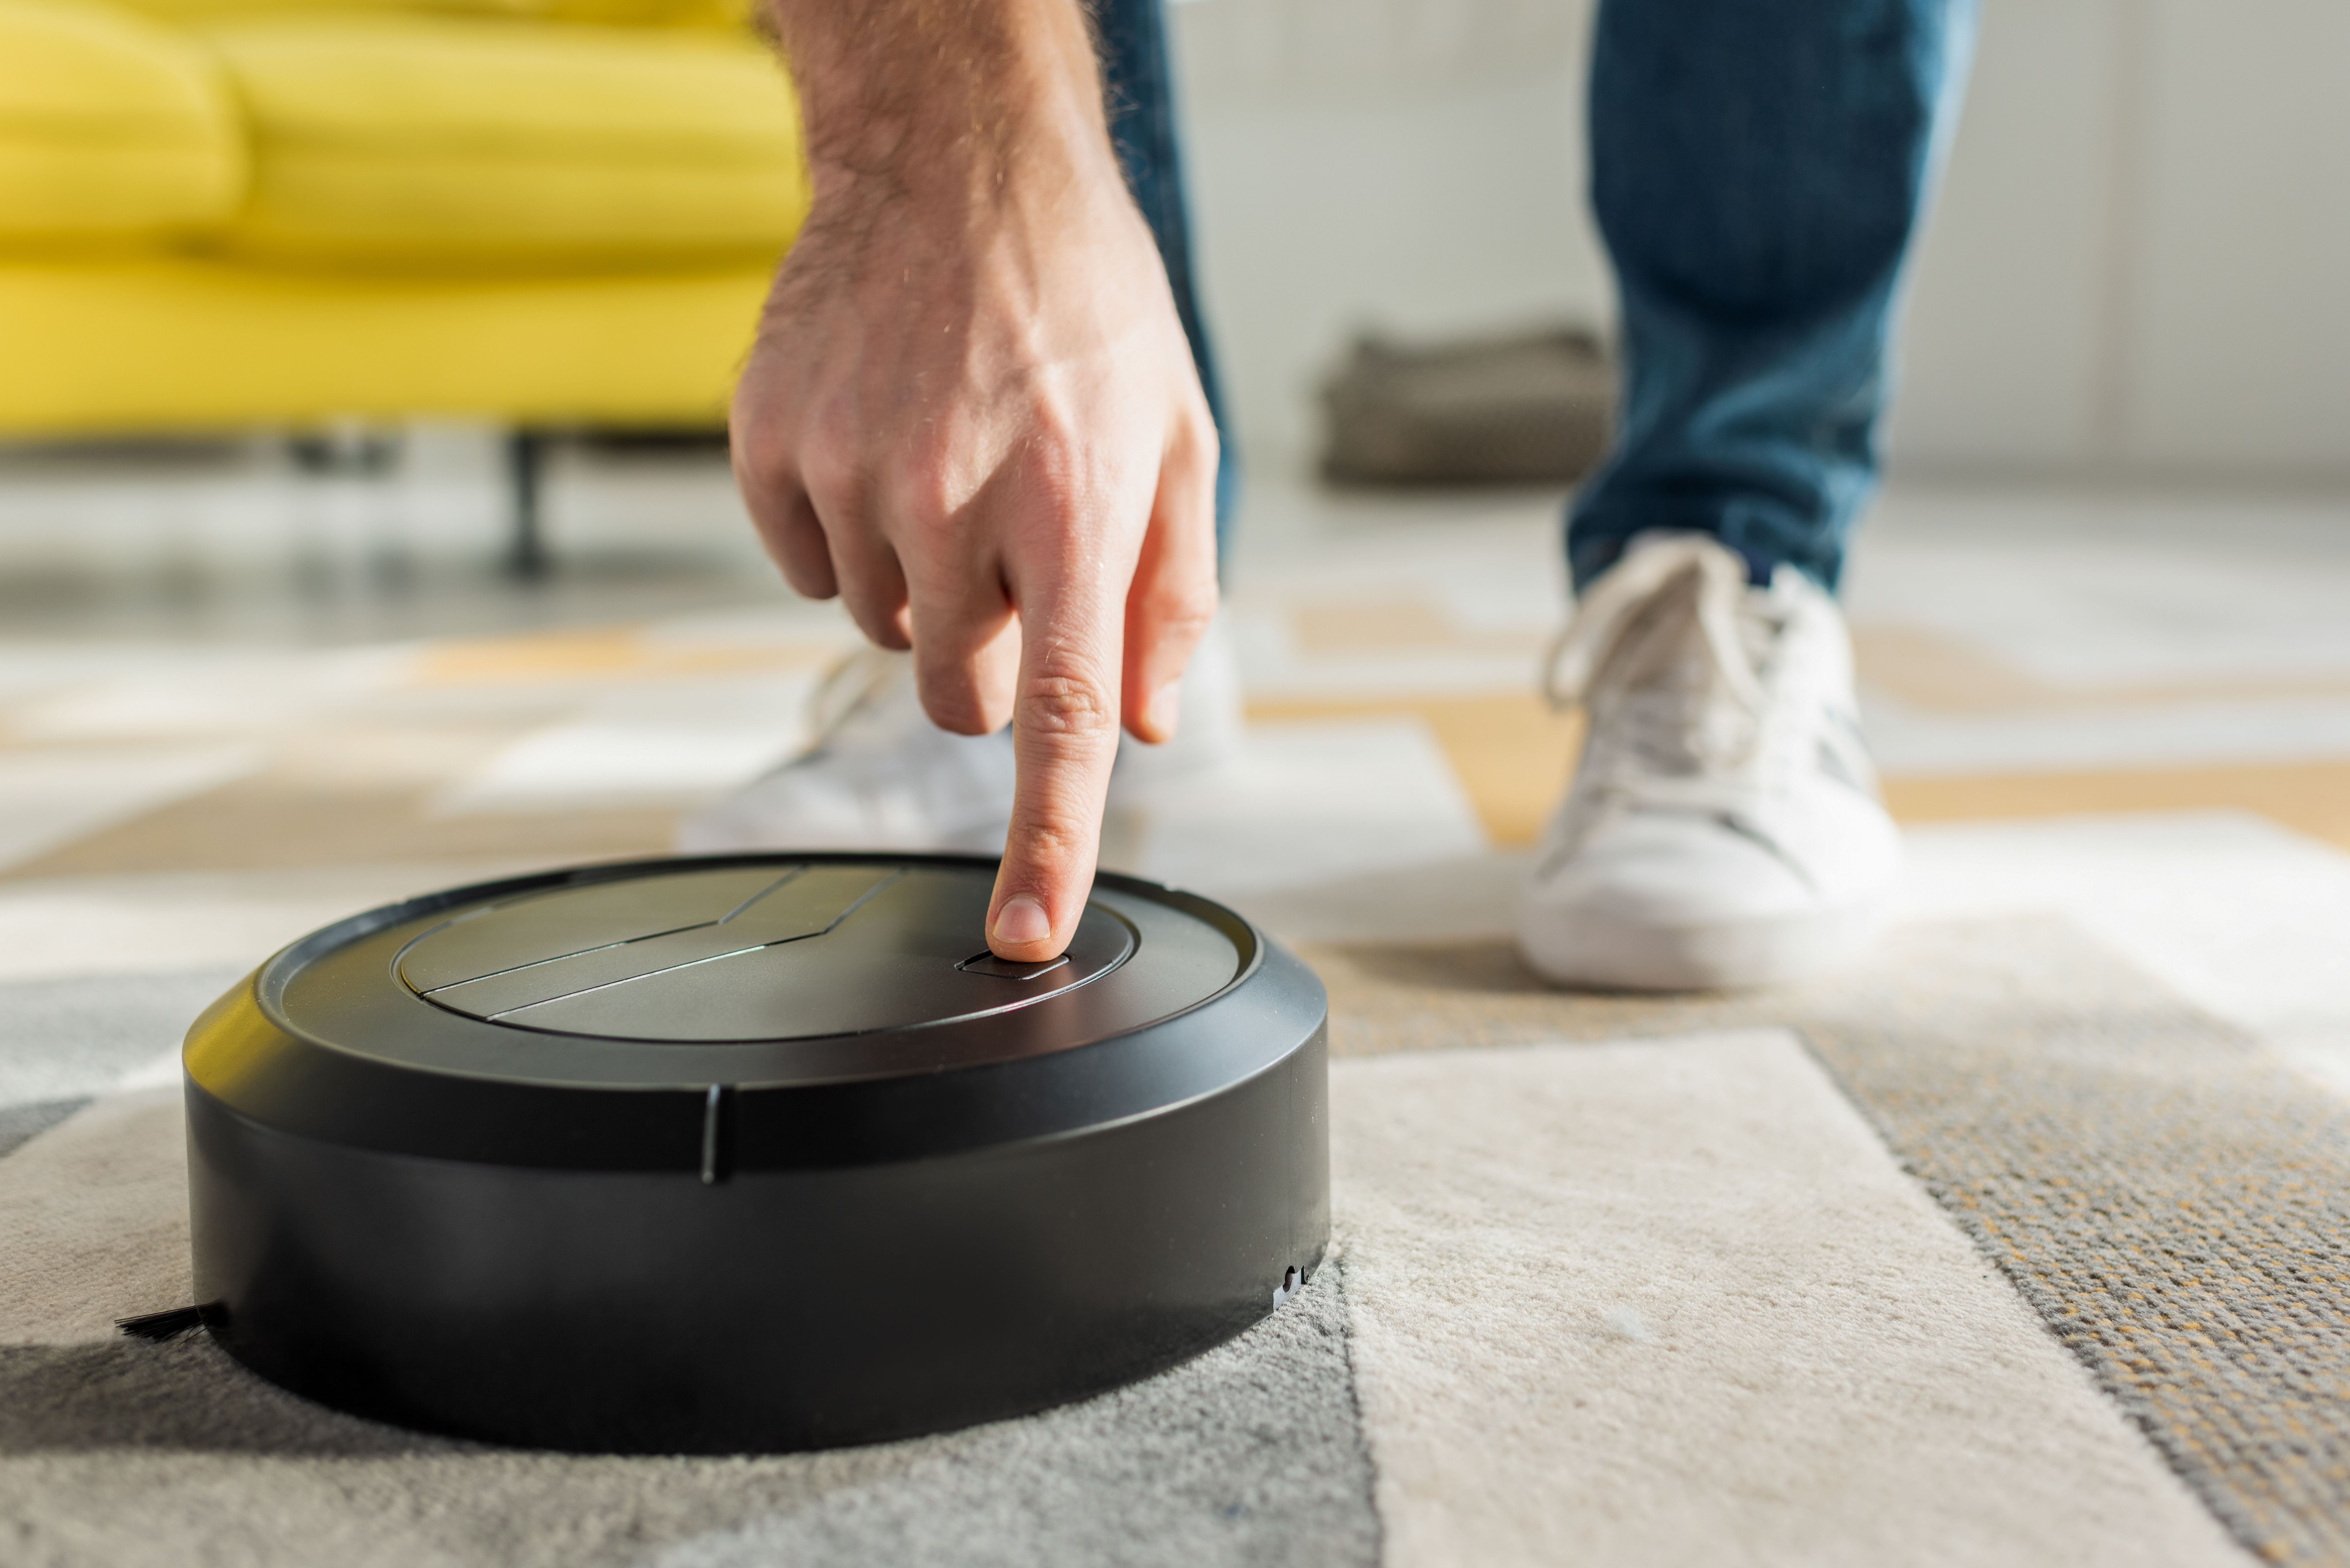 cropped view of man pointing with finger at robotic vacuum cleaner in living room